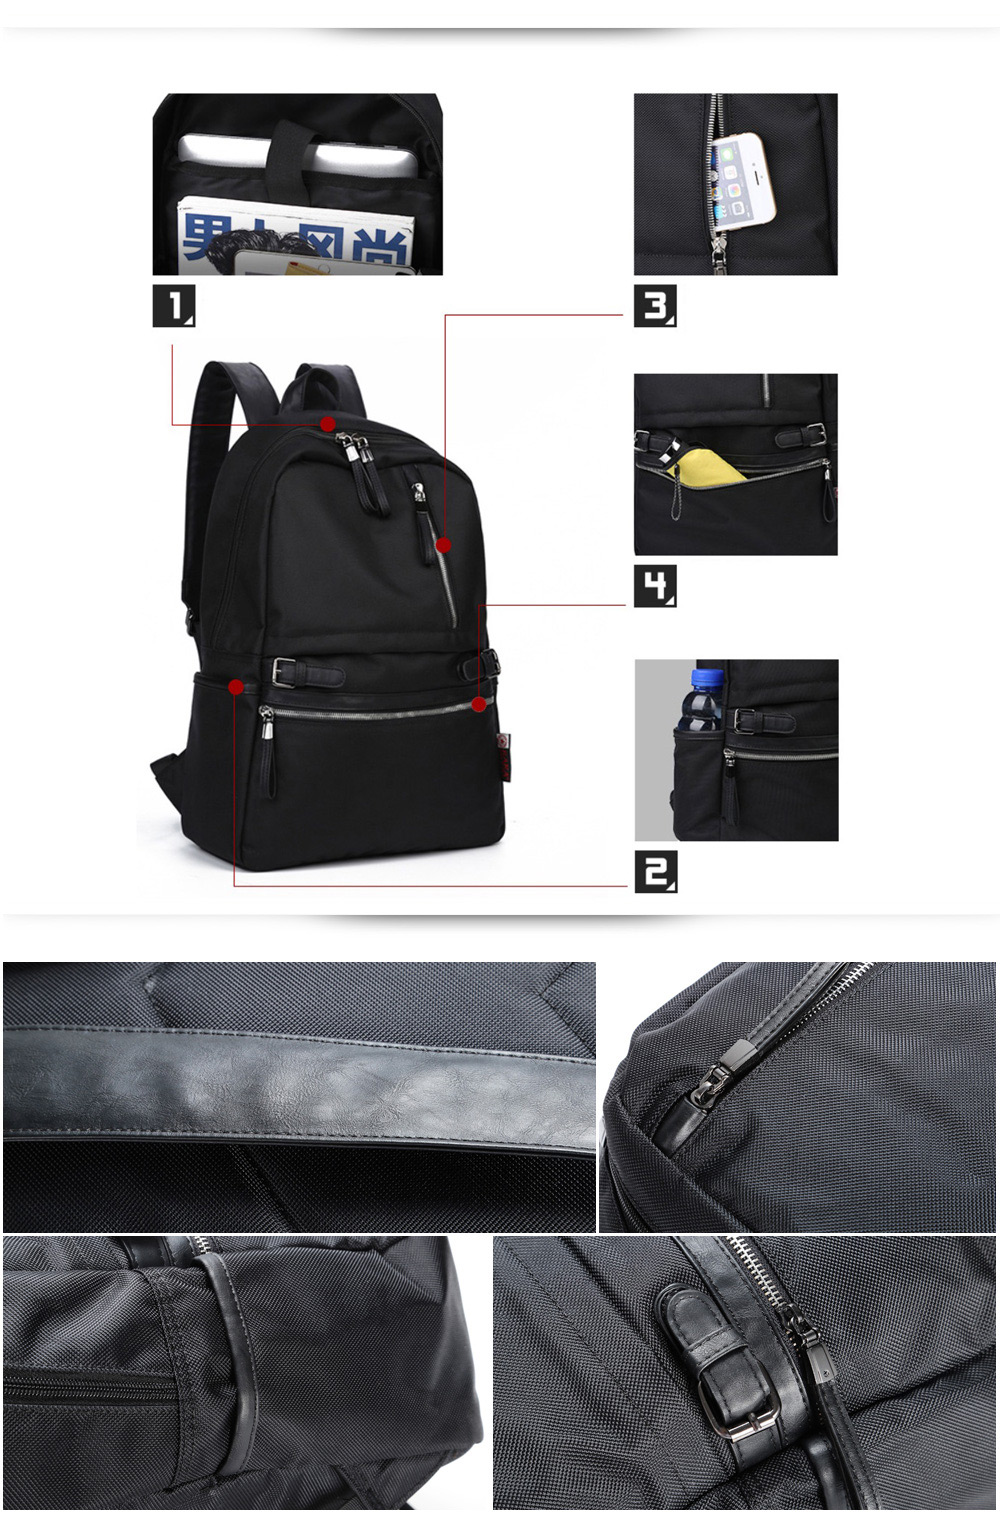 Kaka 2188 20L Leisure Backpack 14 inch Laptop Bag with Polyester Lining